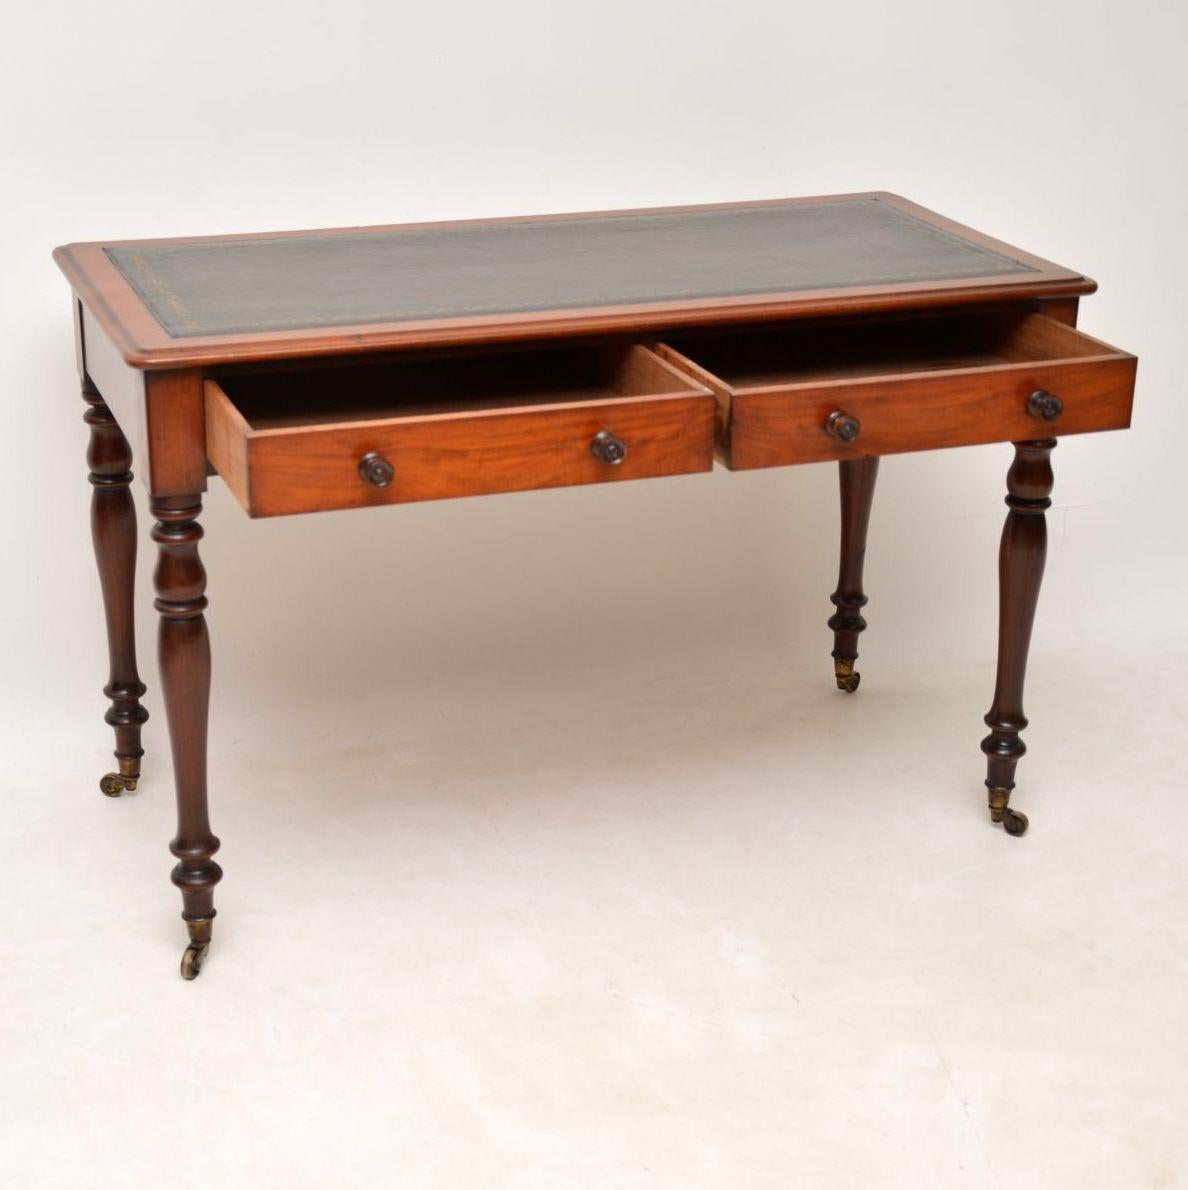 Antique Victorian Leather Top Mahogany Writing Table or Desk For Sale at  1stdibs - Antique Victorian Leather Top Mahogany Writing Table Or Desk For